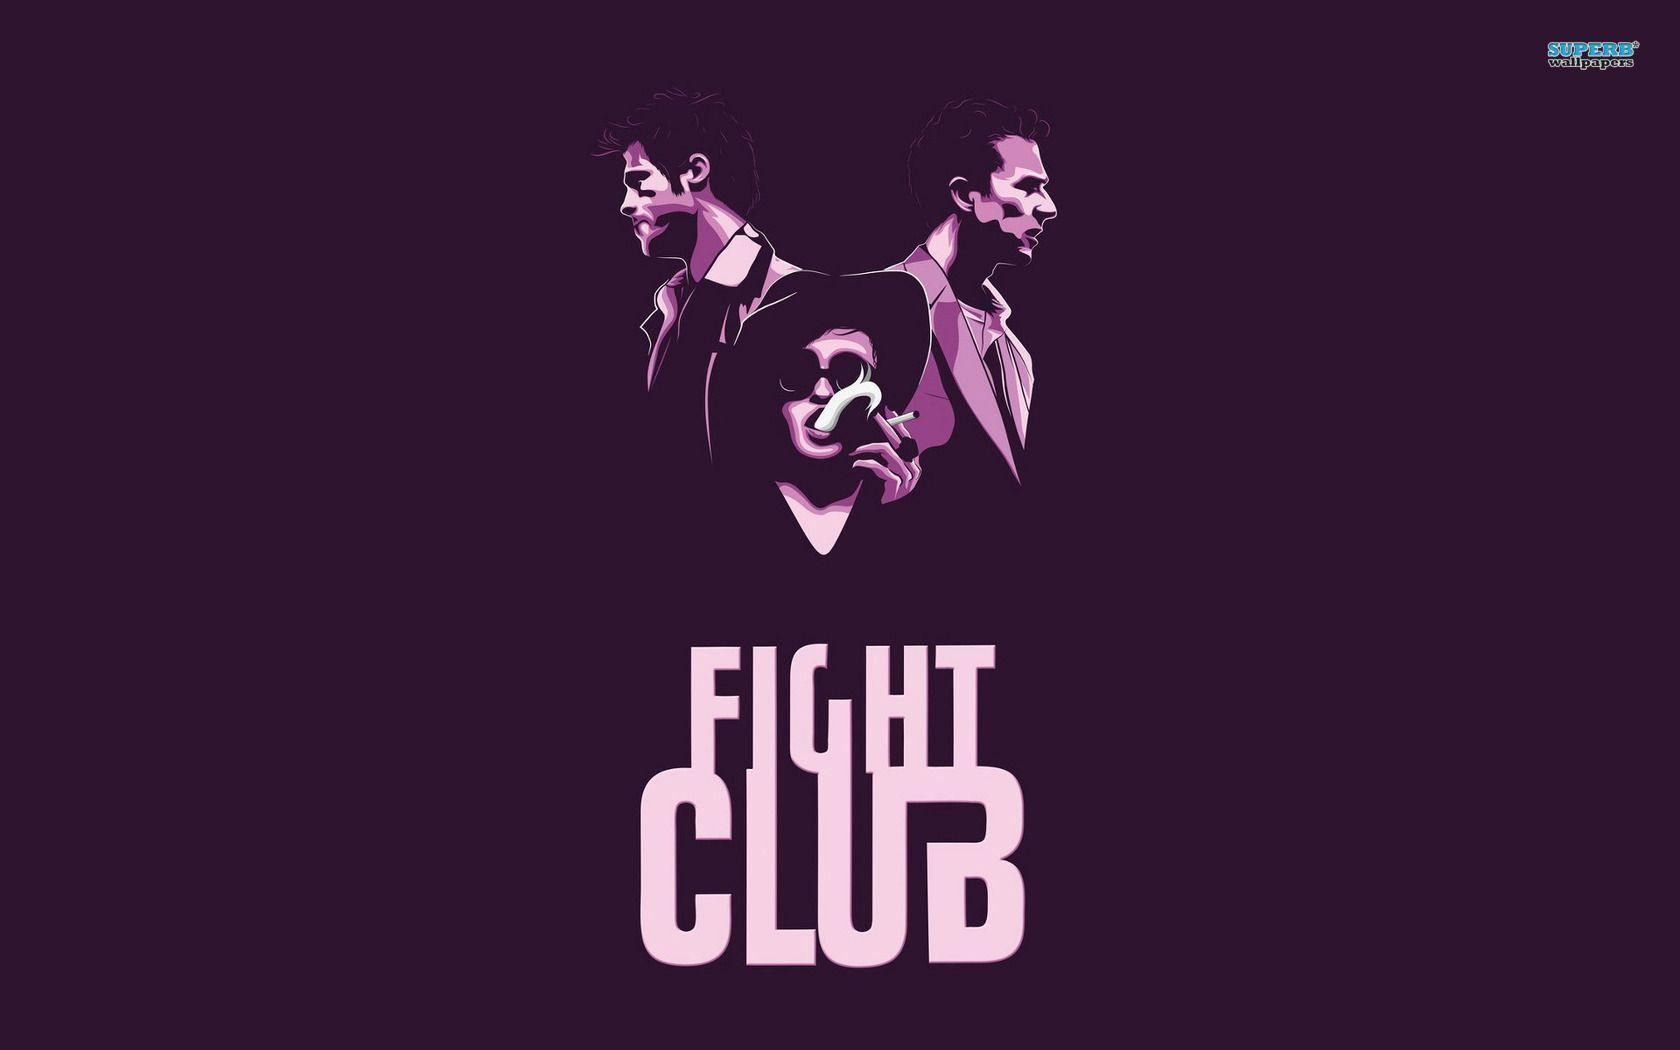 Fight Club Wallpapers Wallpaper Cave HD Wallpapers Download Free Images Wallpaper [1000image.com]